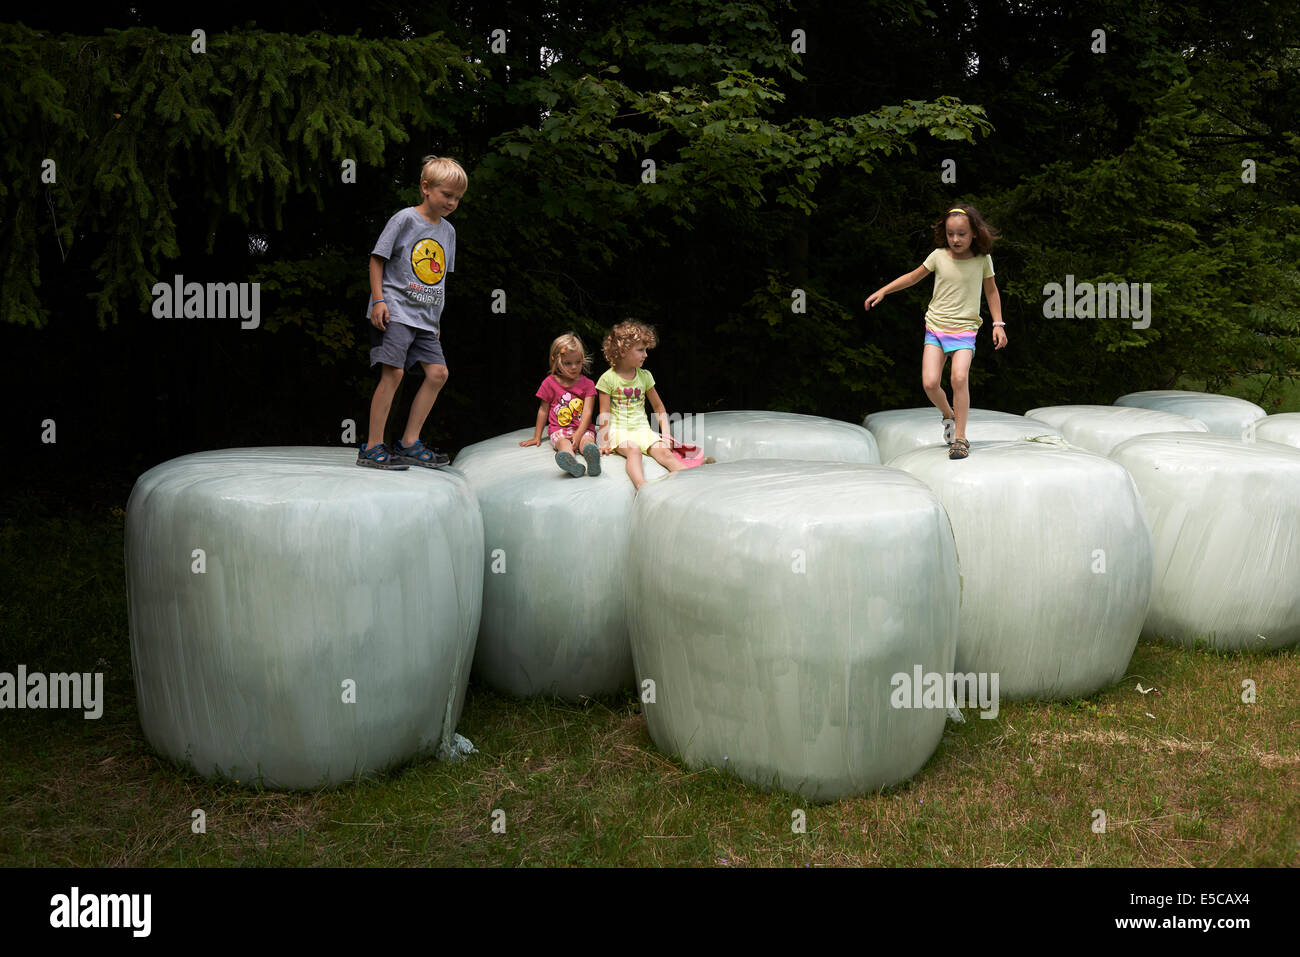 Group of children playing on bales of straw looks like giant teeth, summer time - Stock Image